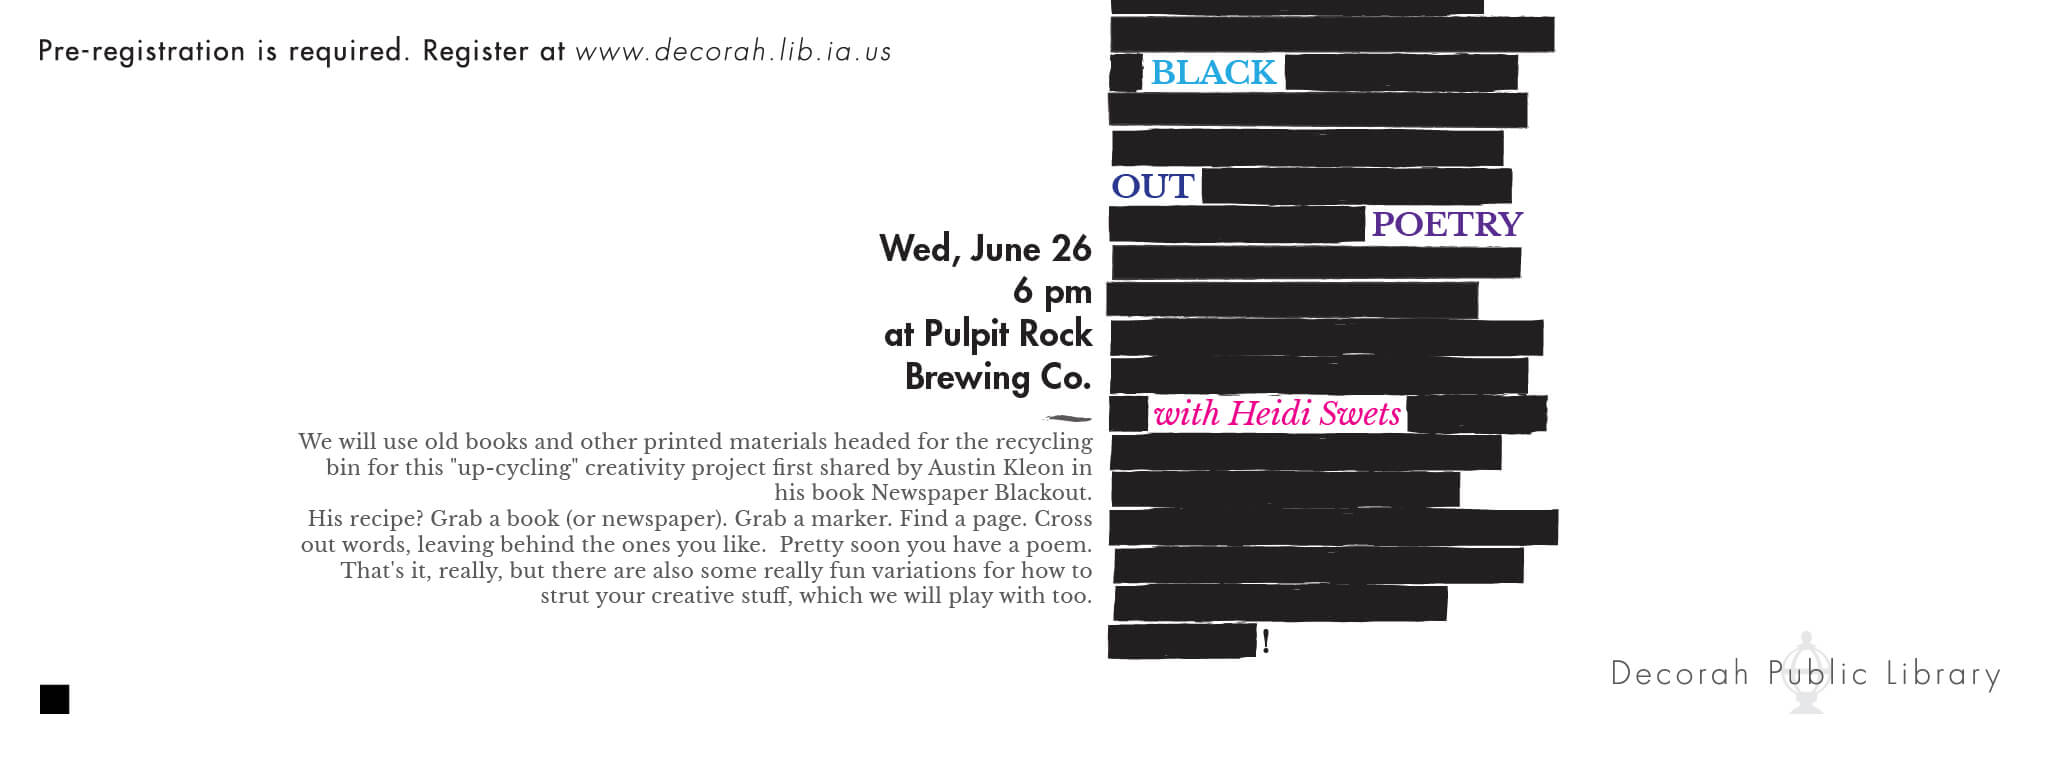 Black Out Poetry June 26th